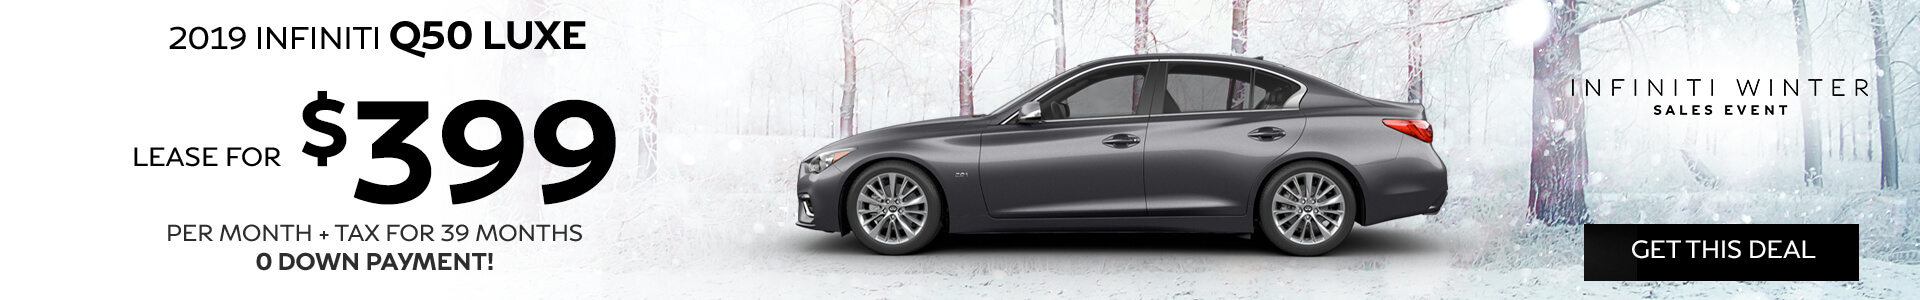 Q50 LUXE - Lease for $399